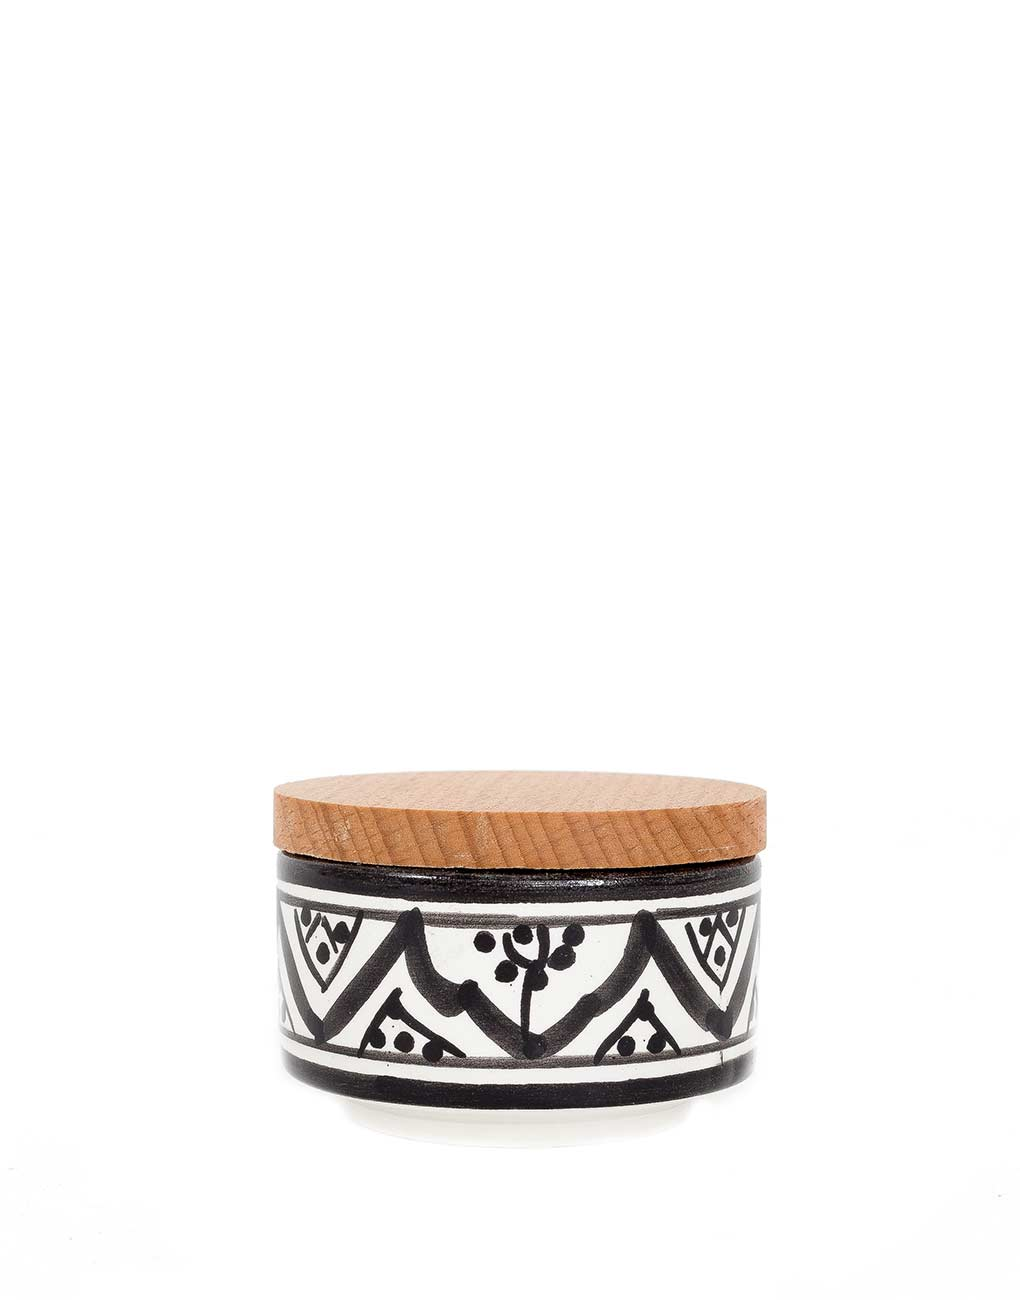 Fair Trade, Handmade Small Moroccan Ceramic Box, Black